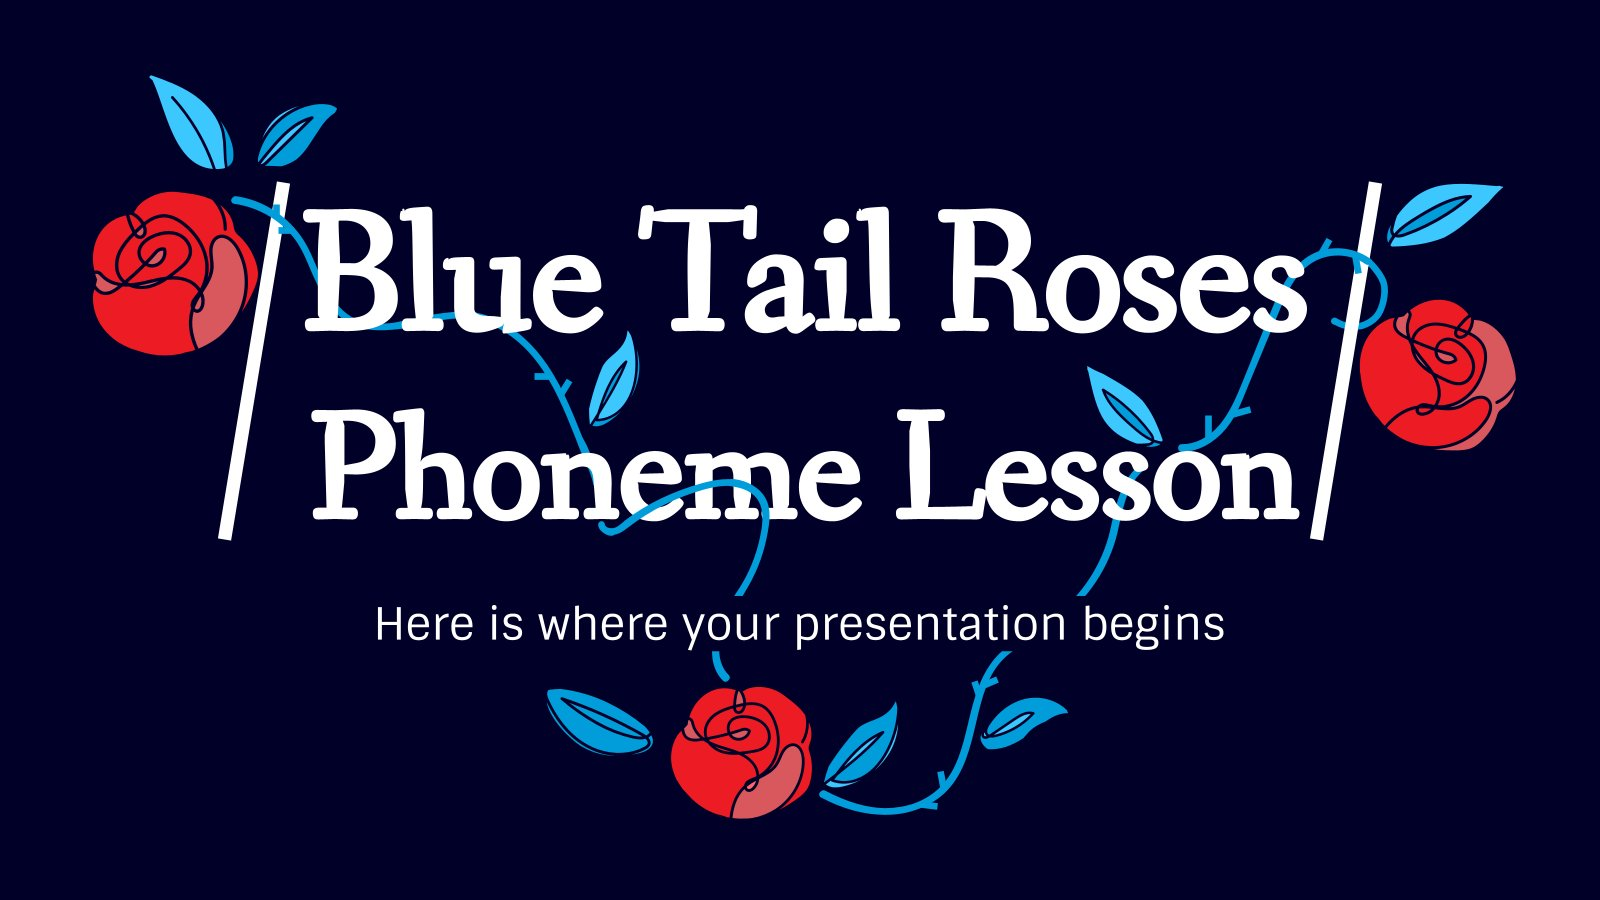 Blue Tail Roses Phoneme Lesson presentation template